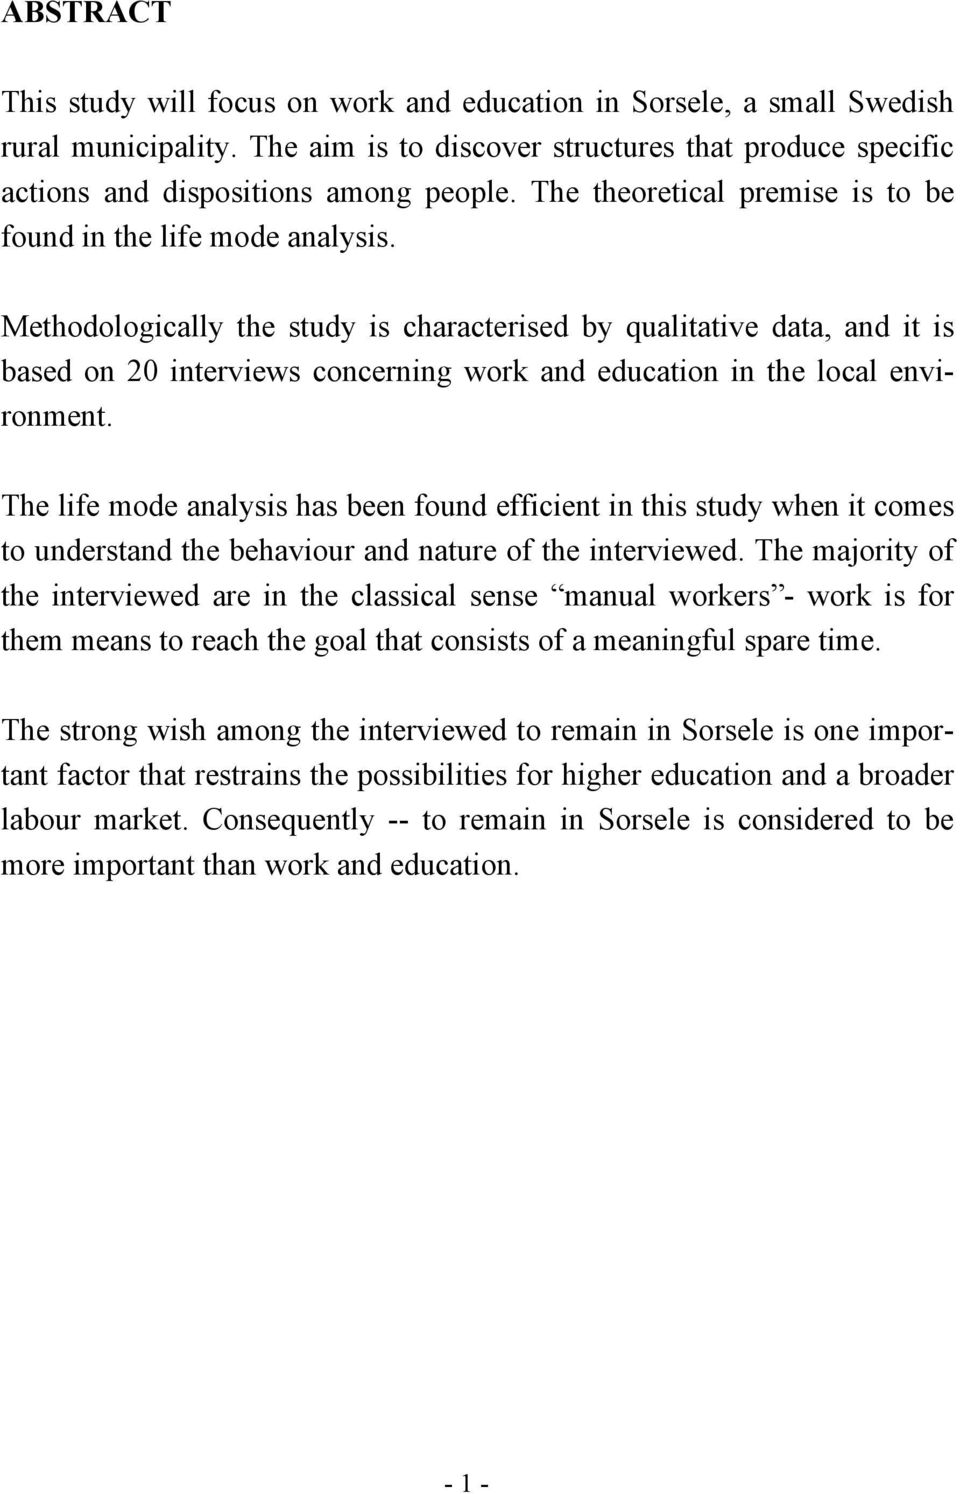 Methodologically the study is characterised by qualitative data, and it is based on 20 interviews concerning work and education in the local environment.